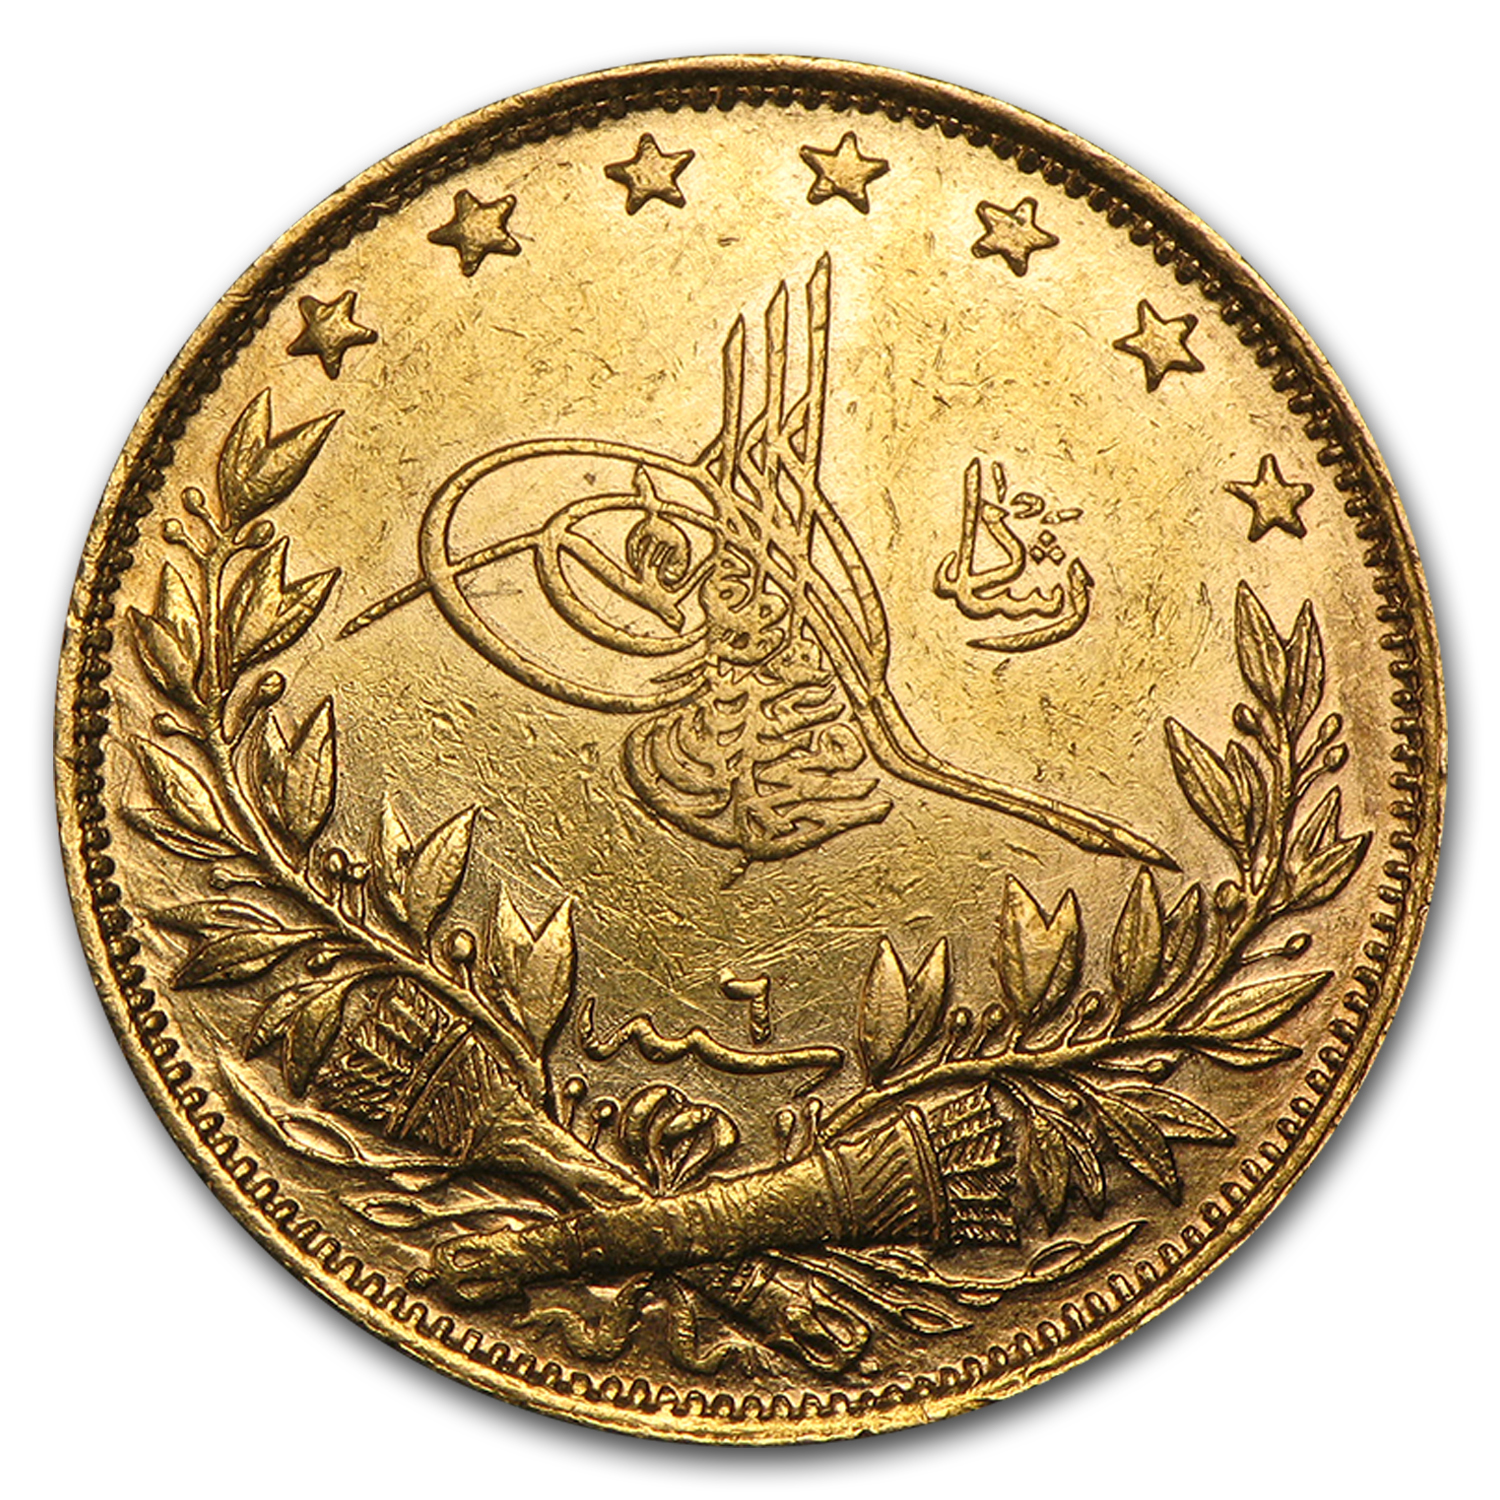 Turkey Gold 100 Kurush XF/AU (Random)